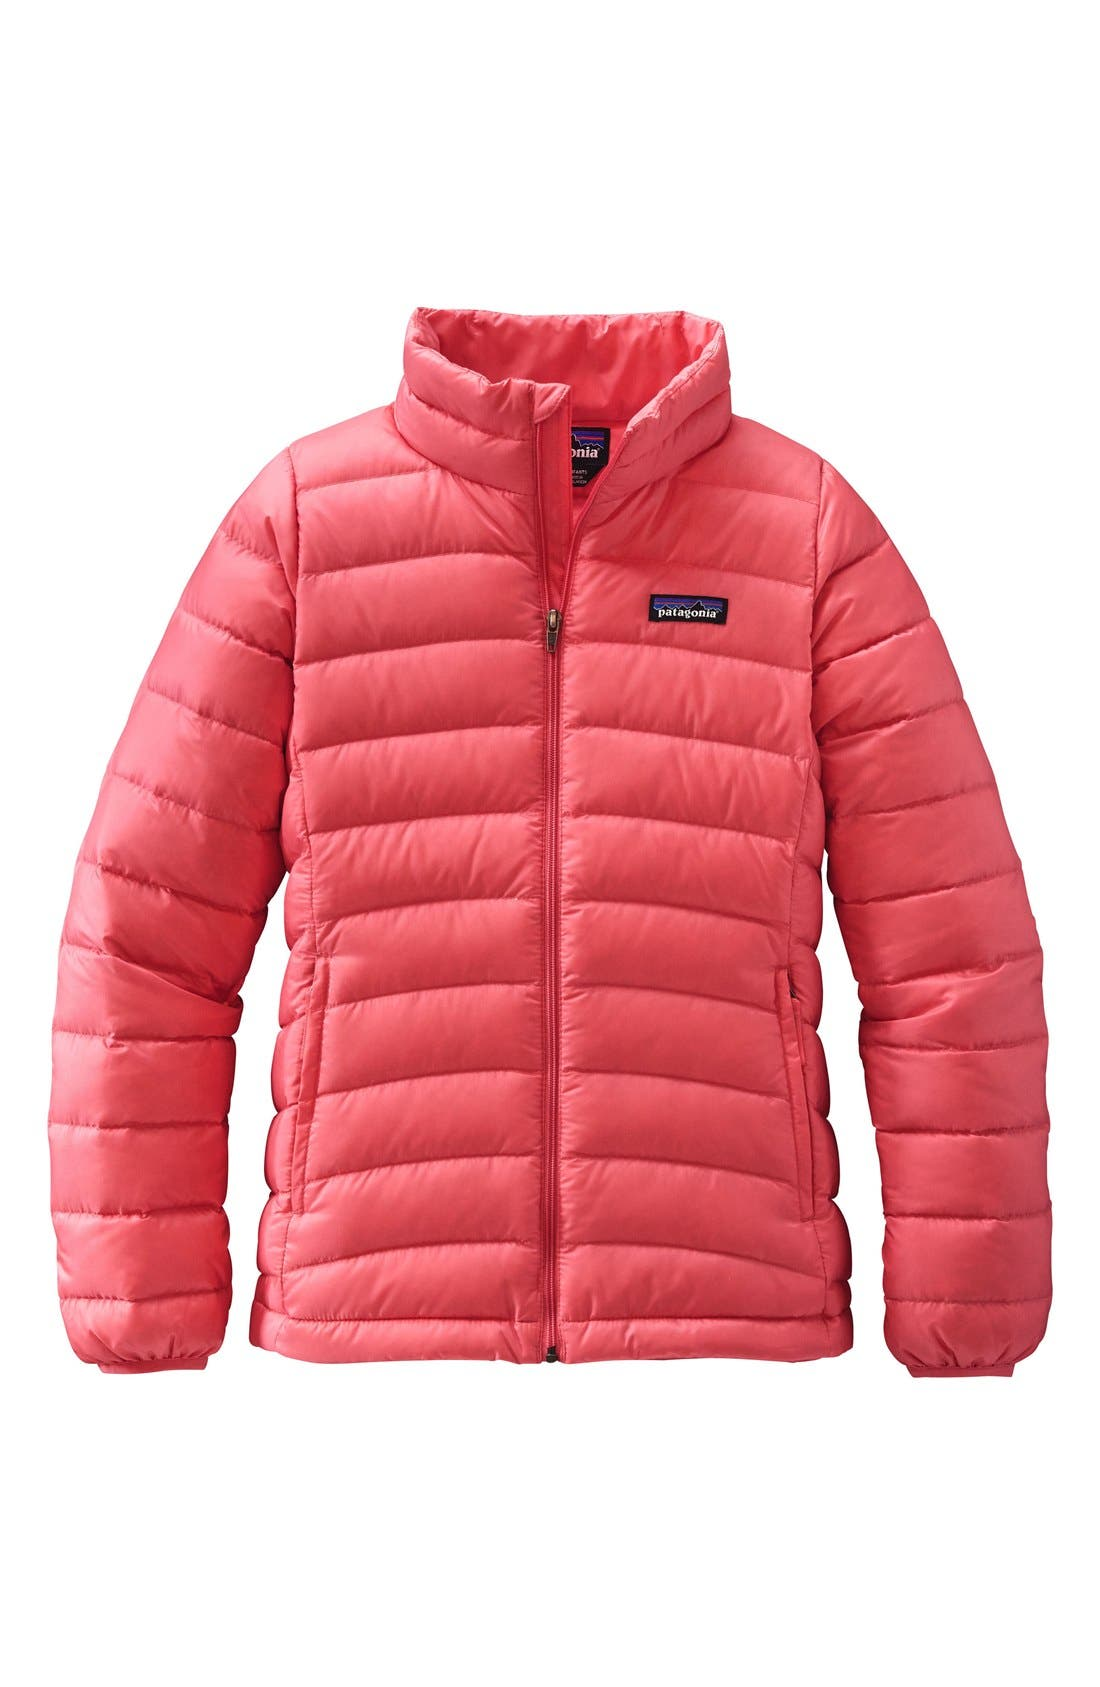 Alternate Image 1 Selected - Patagonia Water Resistant Down Insulated 'Sweater' Jacket (Little Girls & Big Girls)